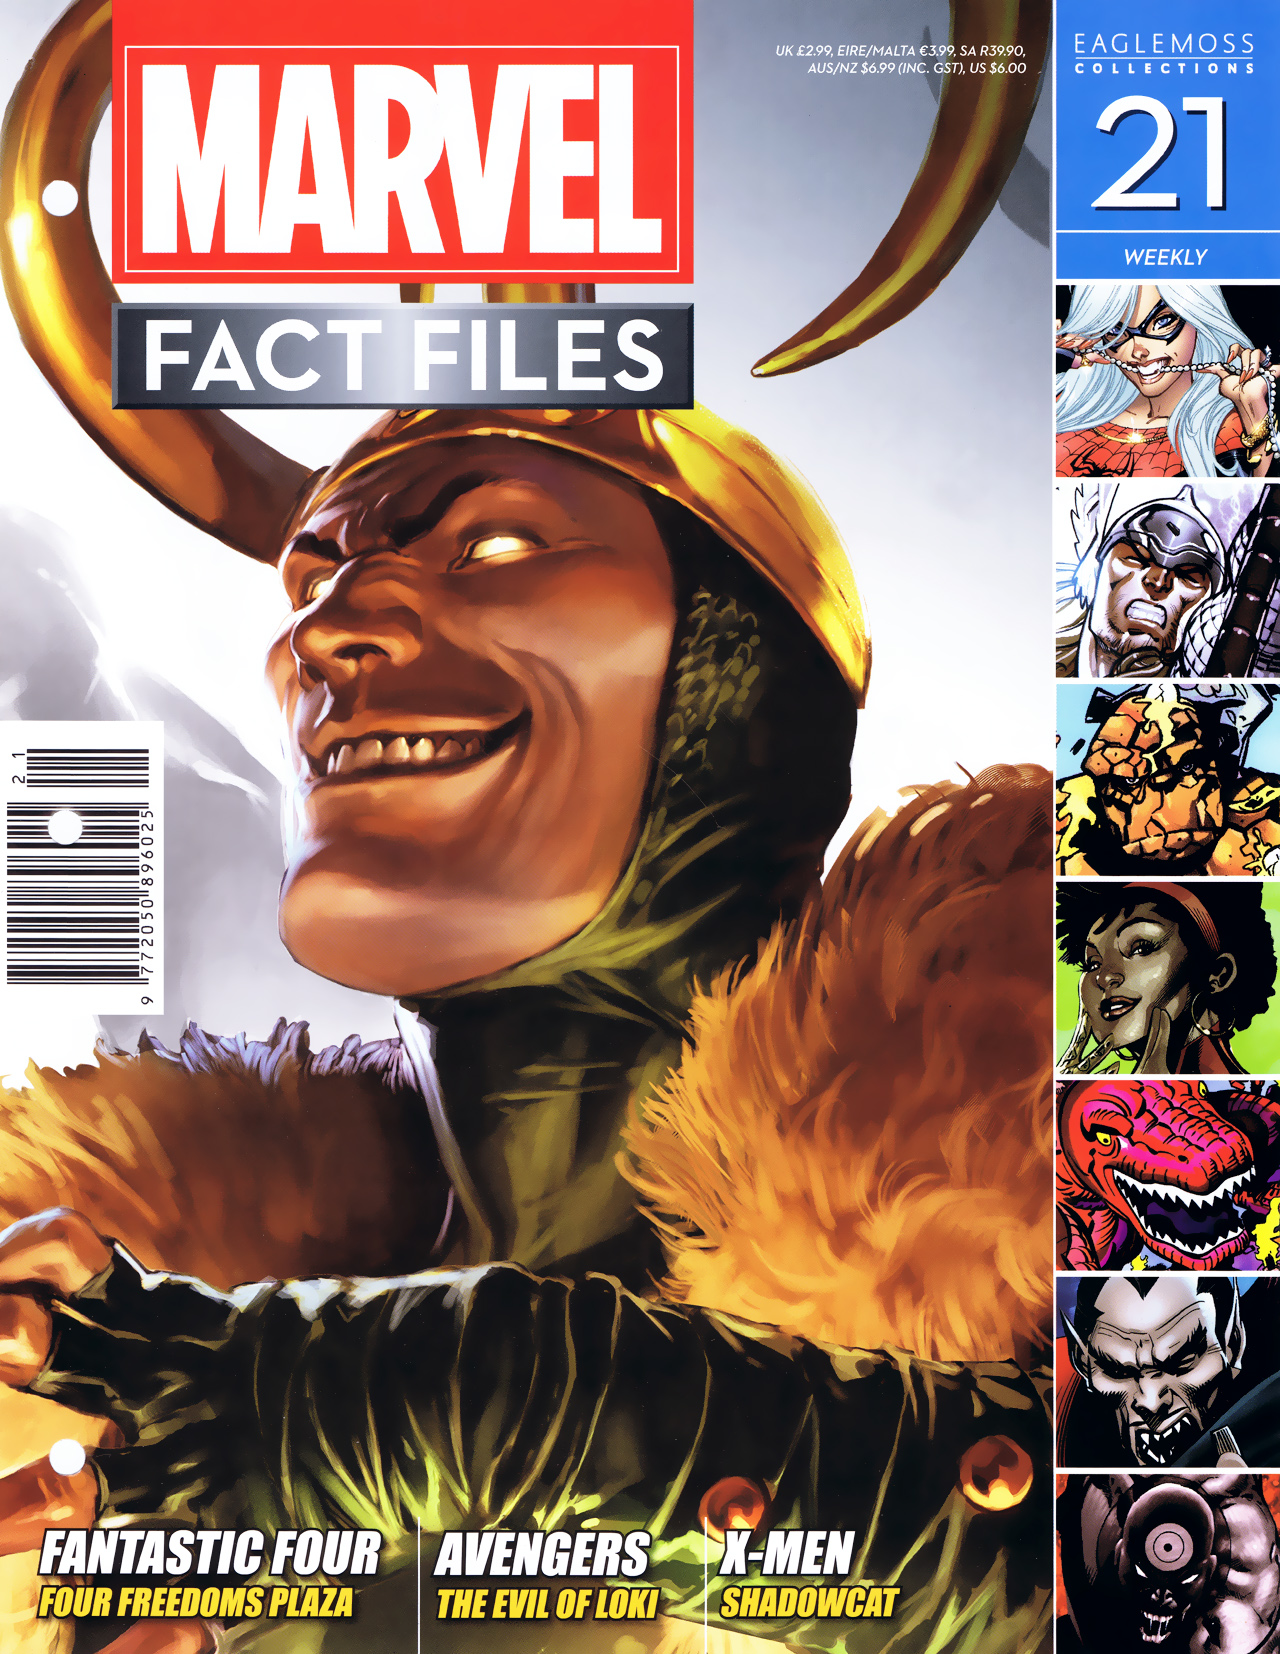 Marvel Fact Files 21 Page 1